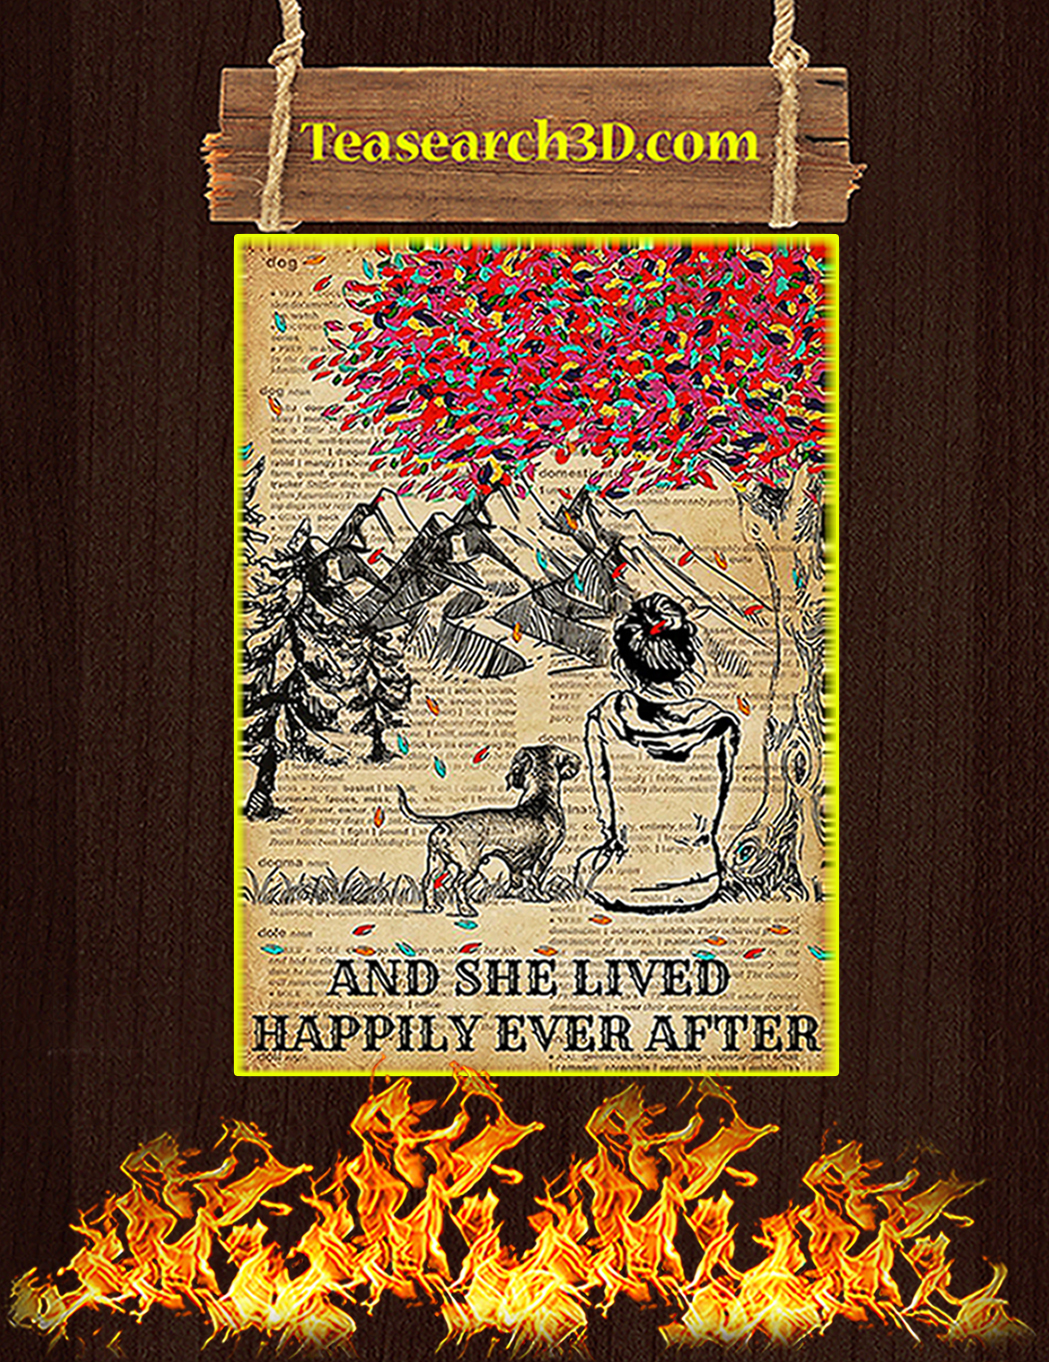 Dictionary dachshund and she lived happily ever after poster A1